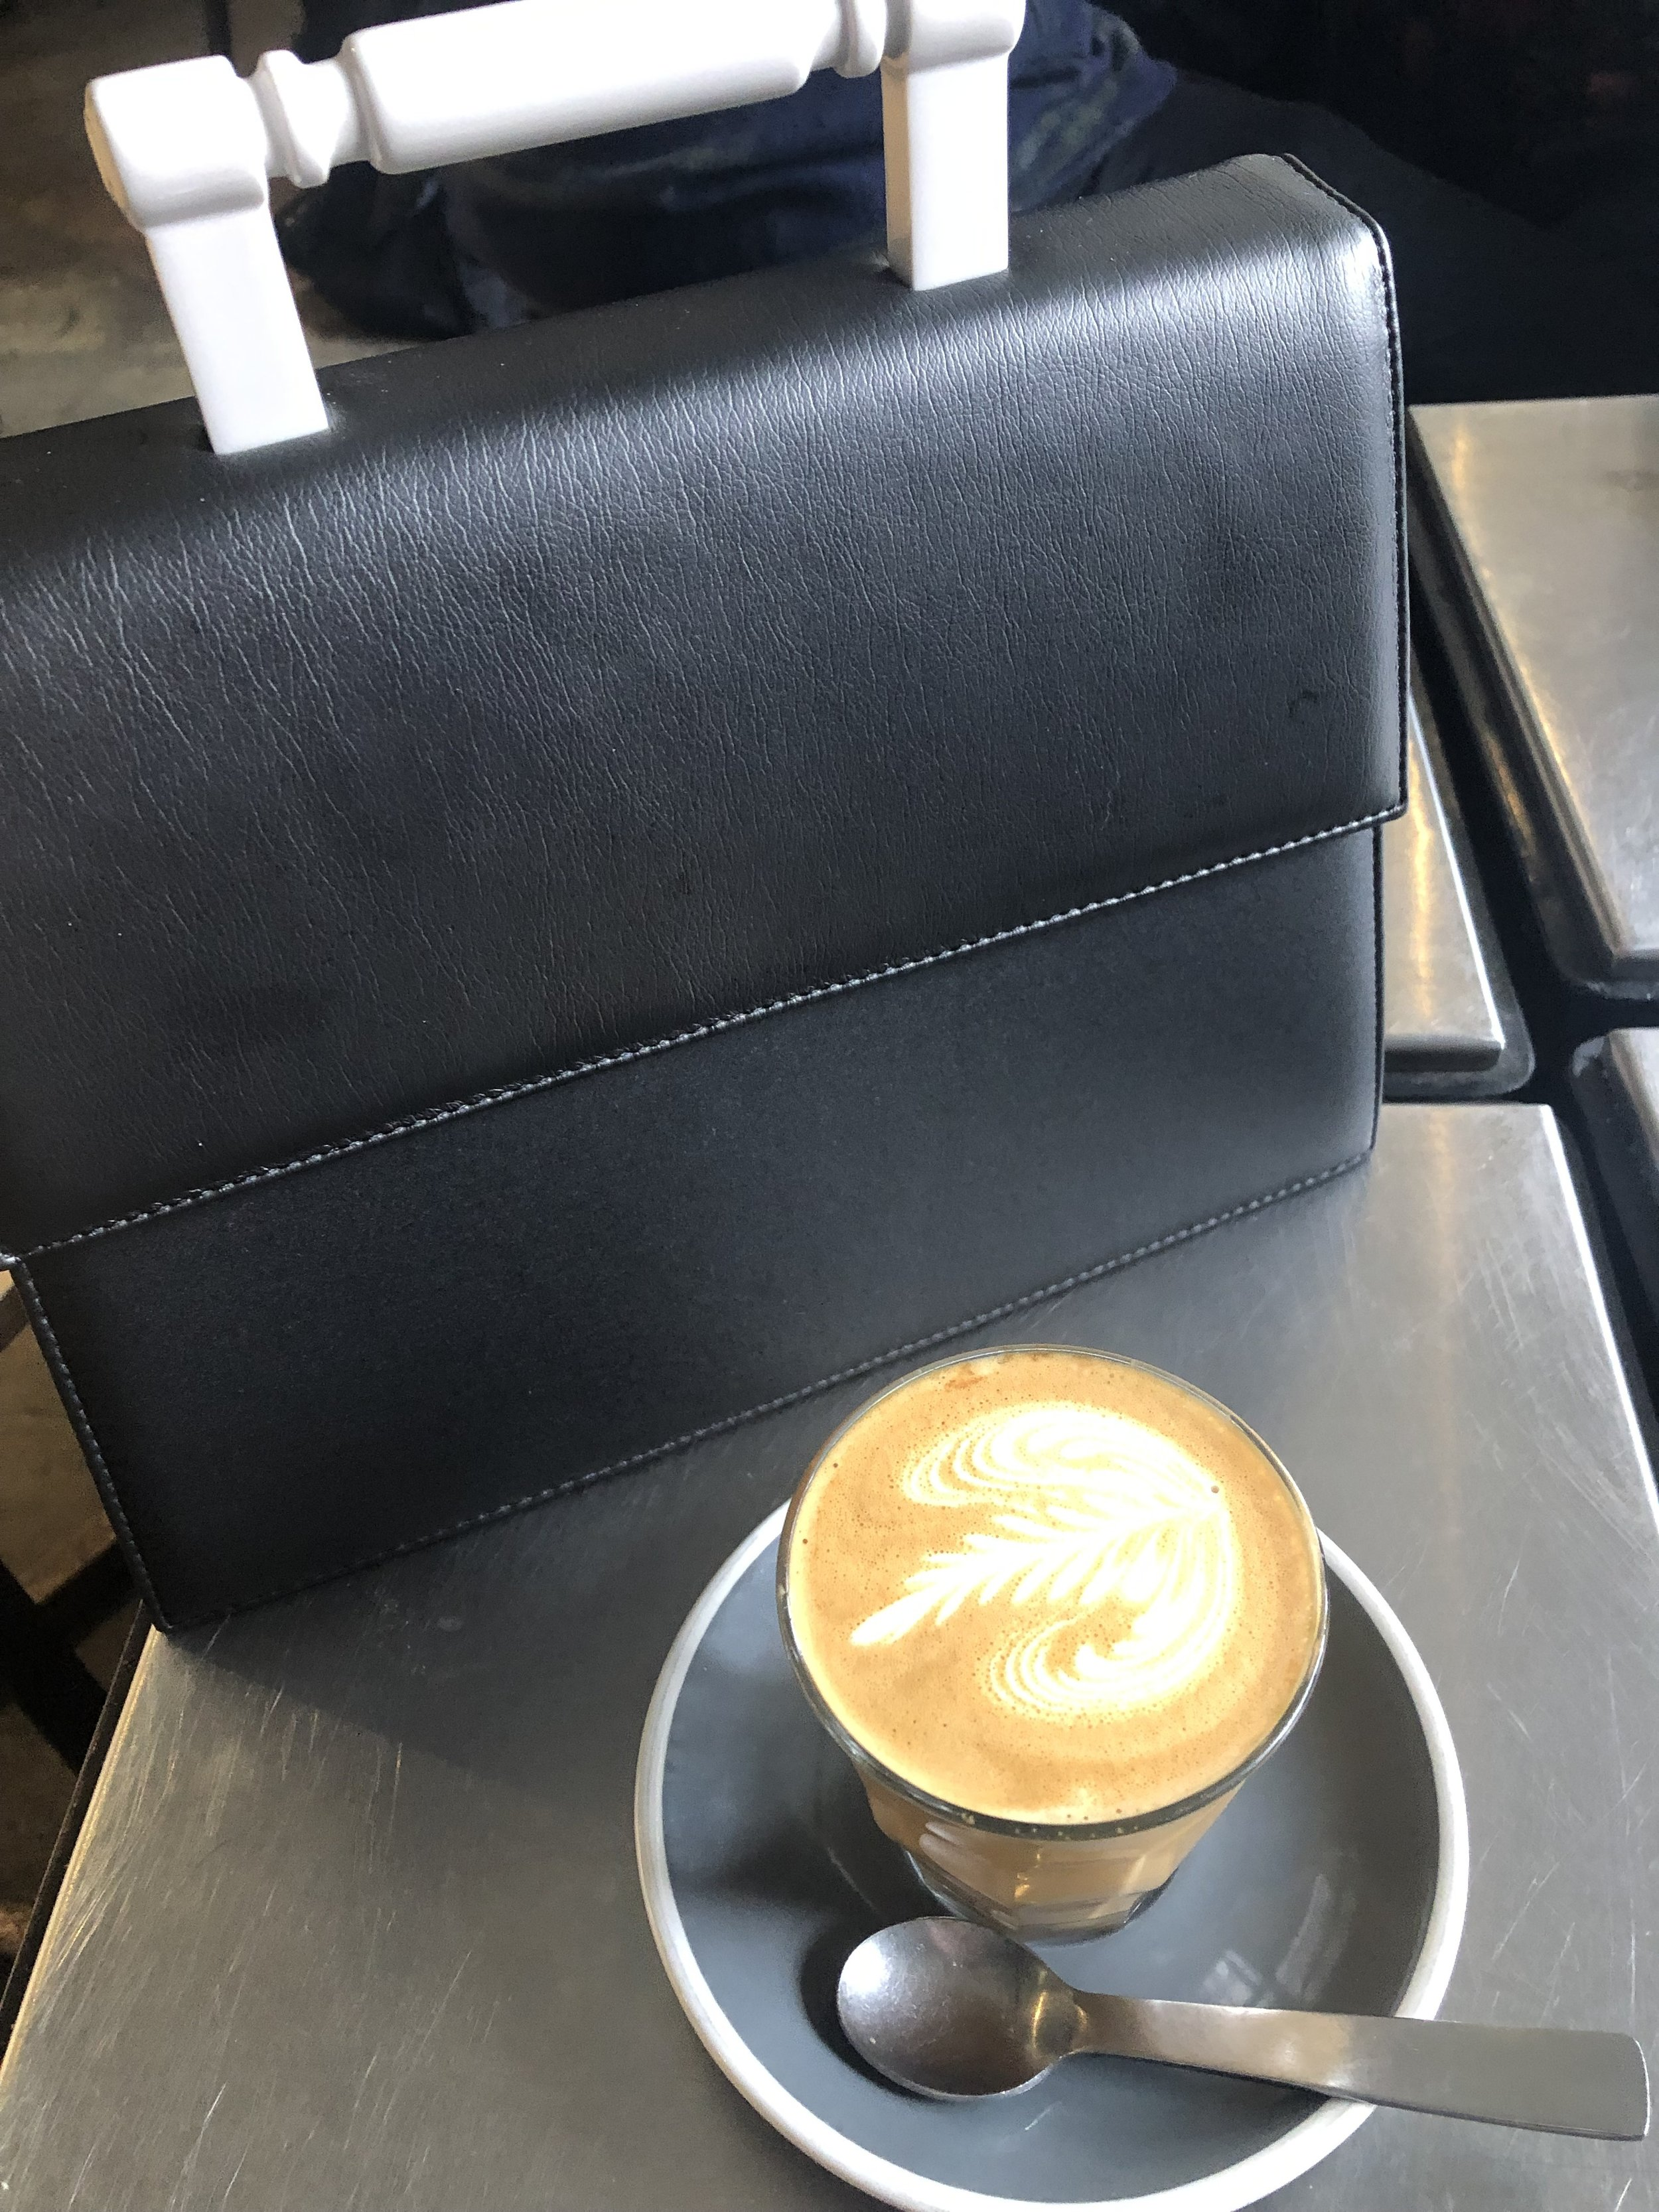 Bag by Mashu, coffee by Mexico